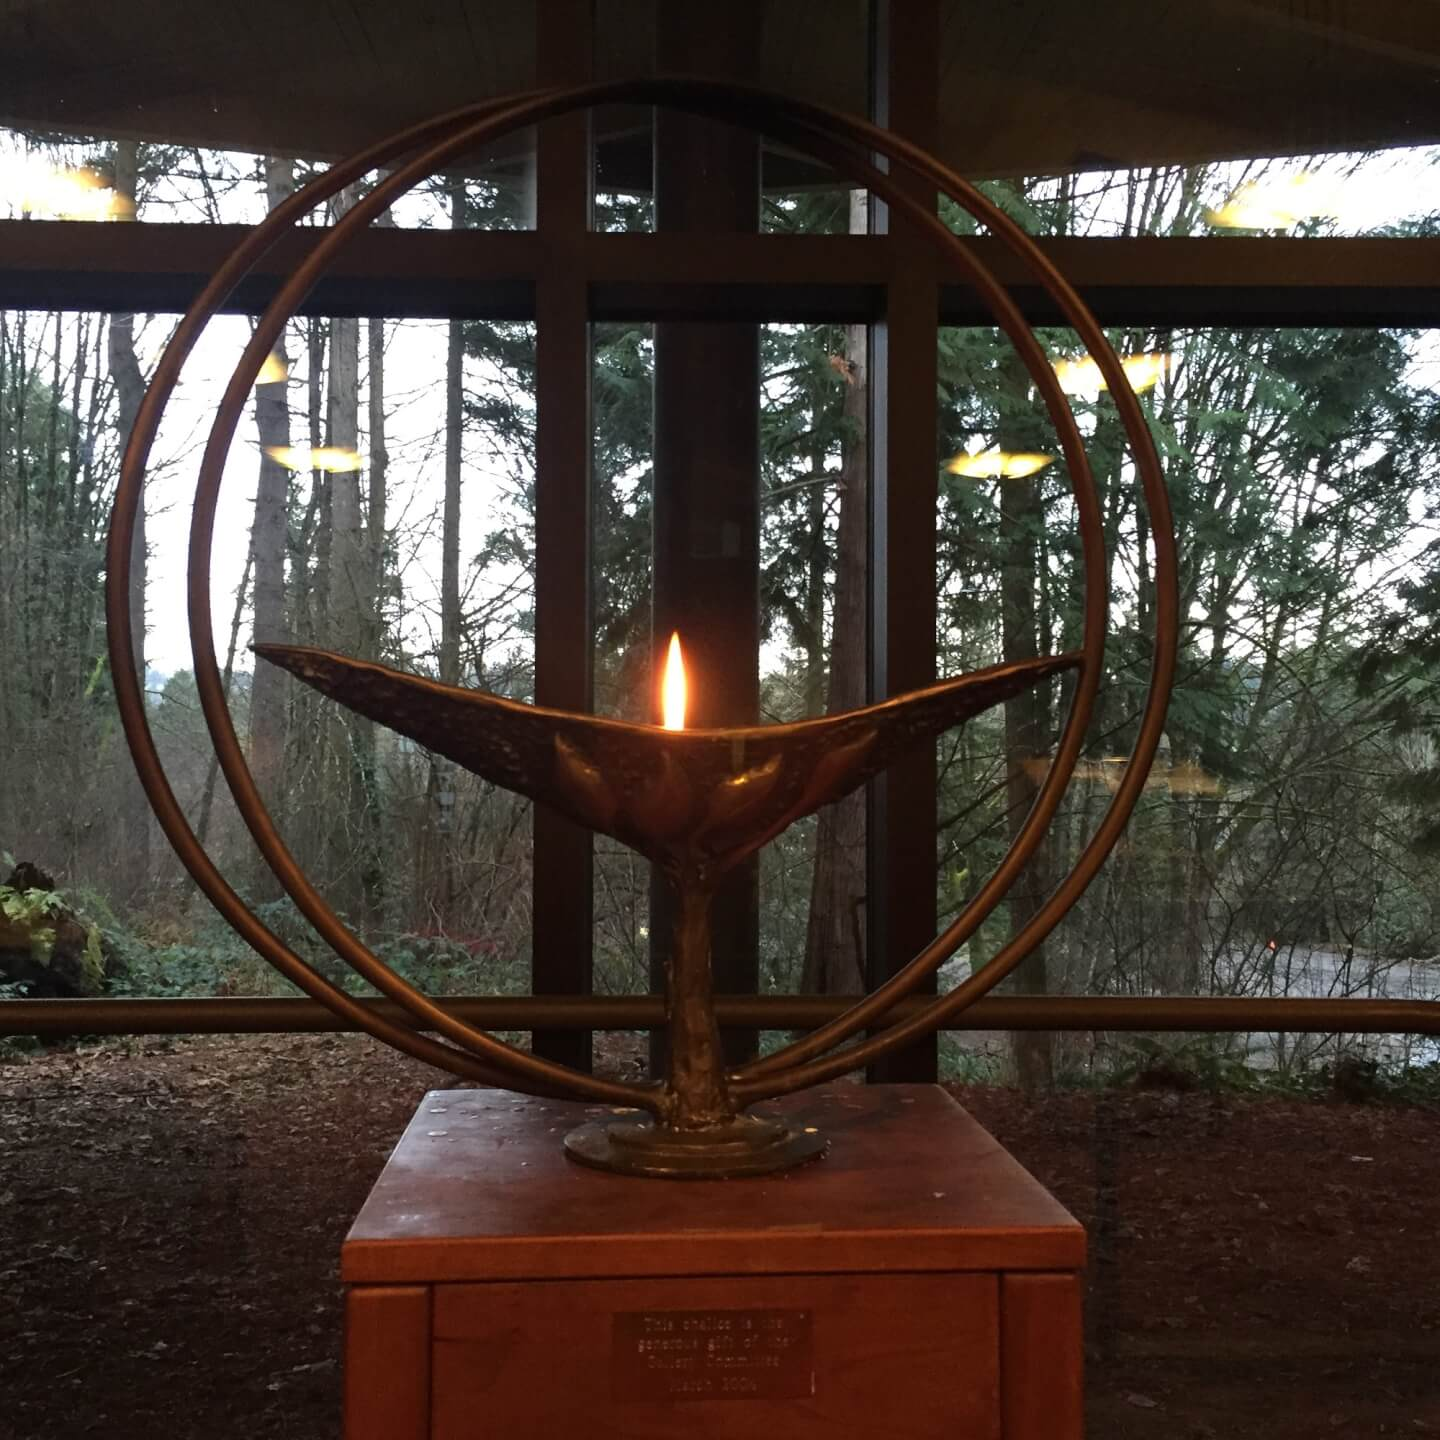 Our Symbol: The Flaming Chalice